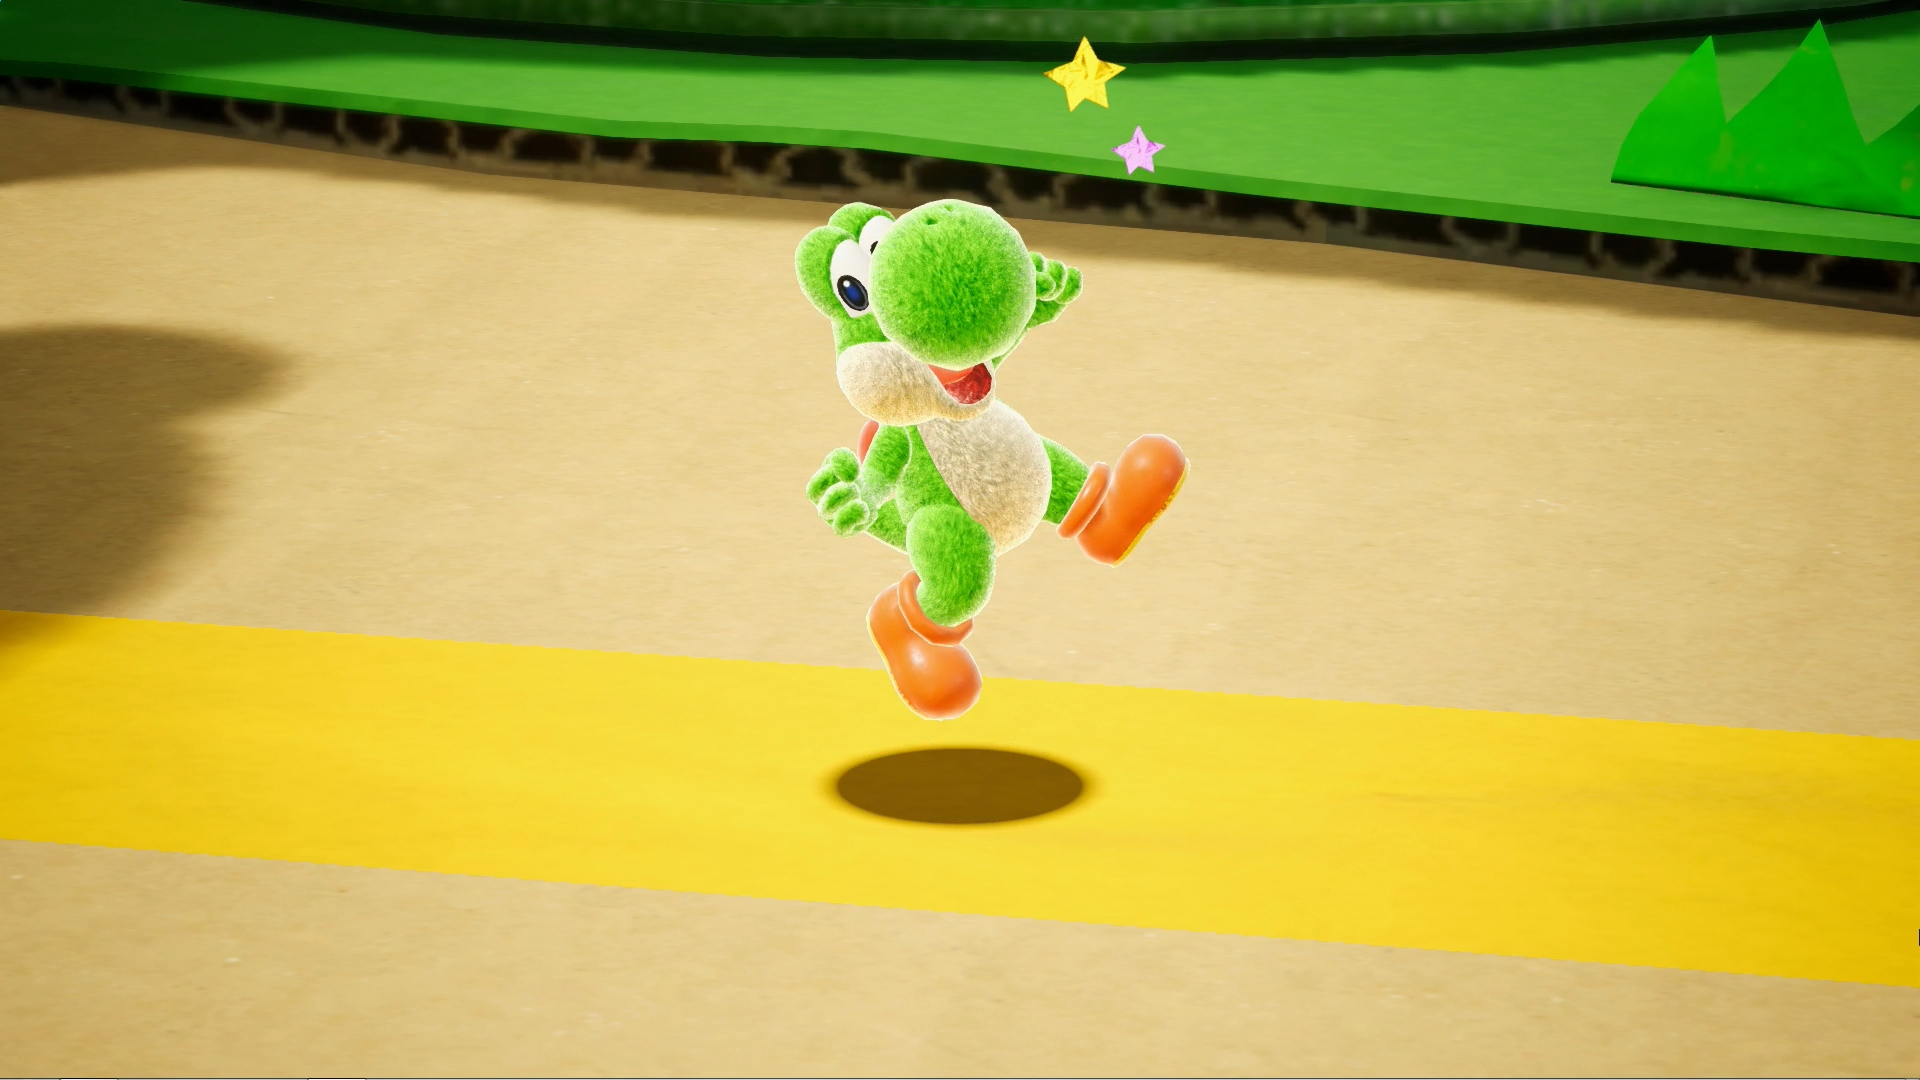 Yoshi's Crafted World - a new Switch game for 2019